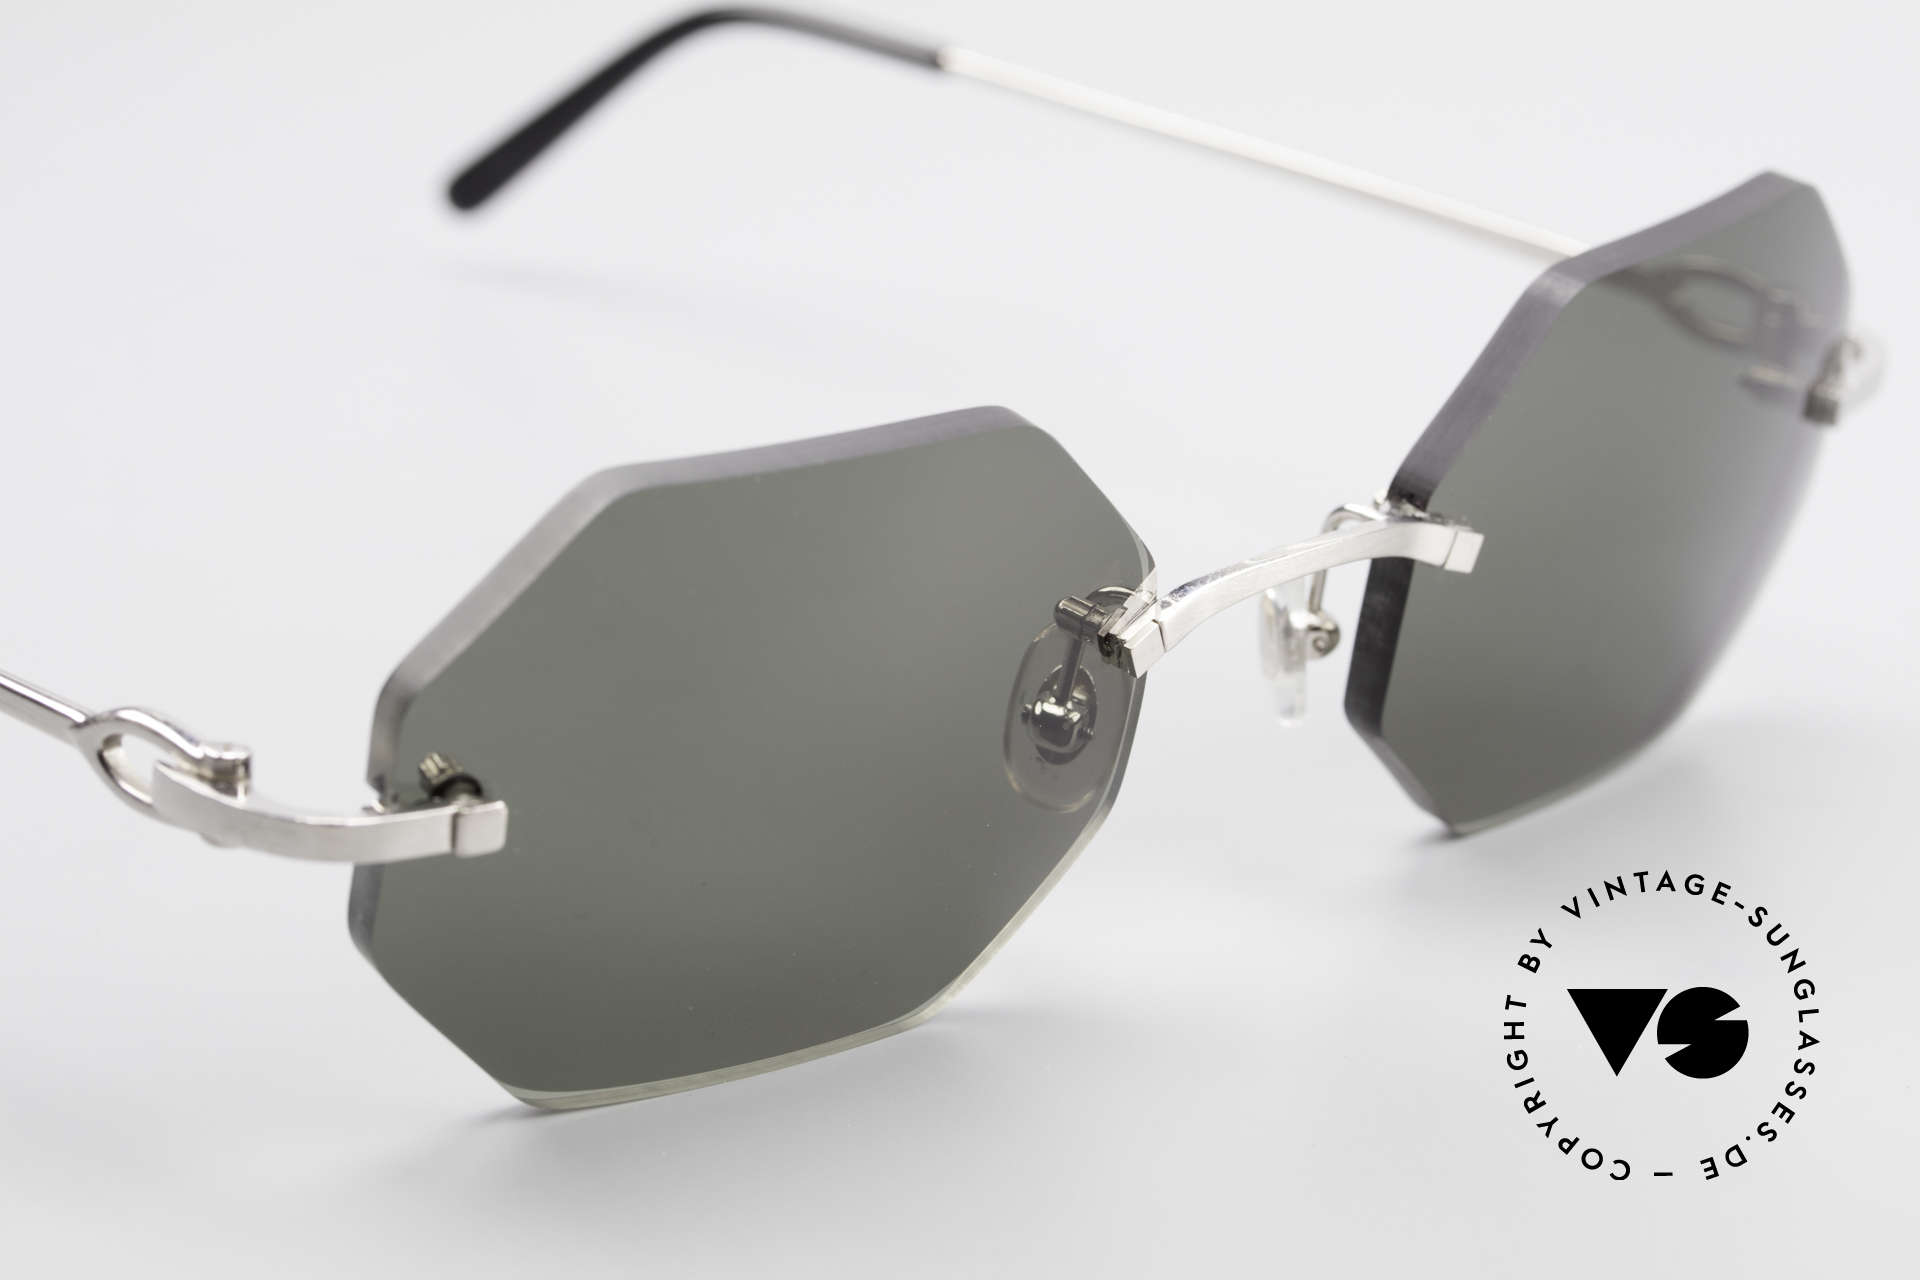 Cartier C-Decor Octag Octagonal Luxury Sunglasses, customized by our optician in medium size 50/20, 140, Made for Men